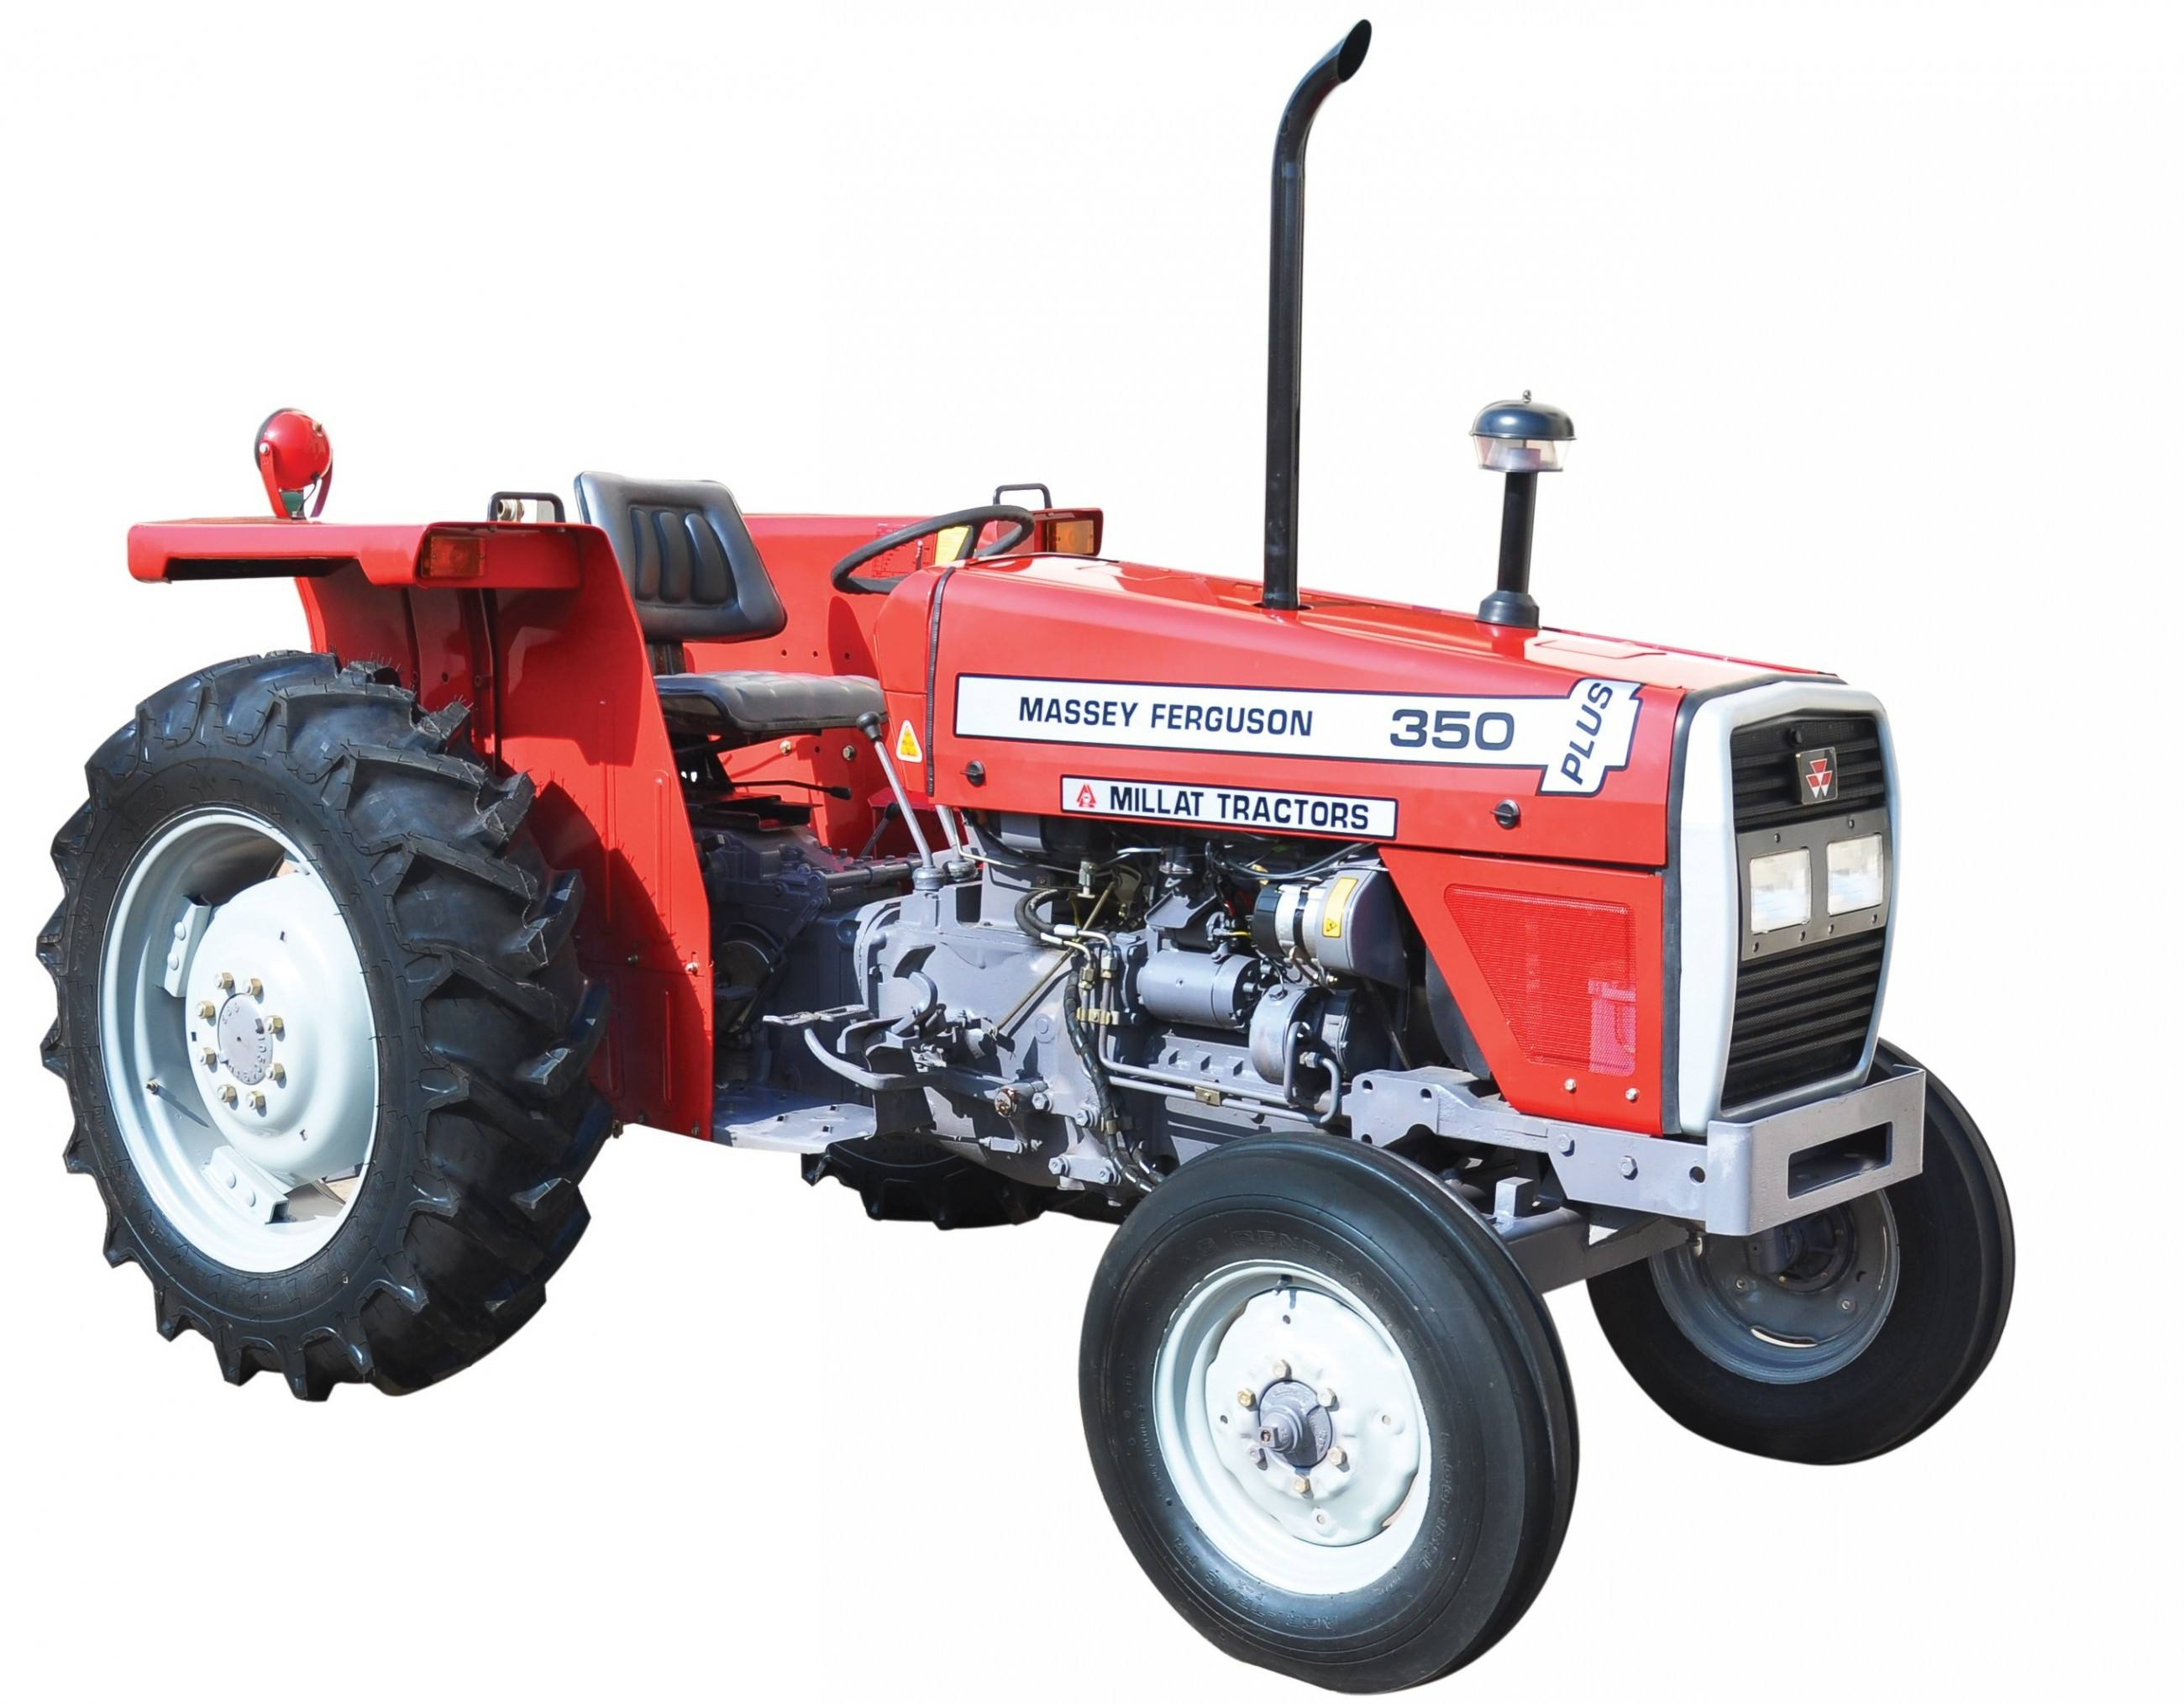 UK Made Used Massey Ferguson 385 Tractors For Sale